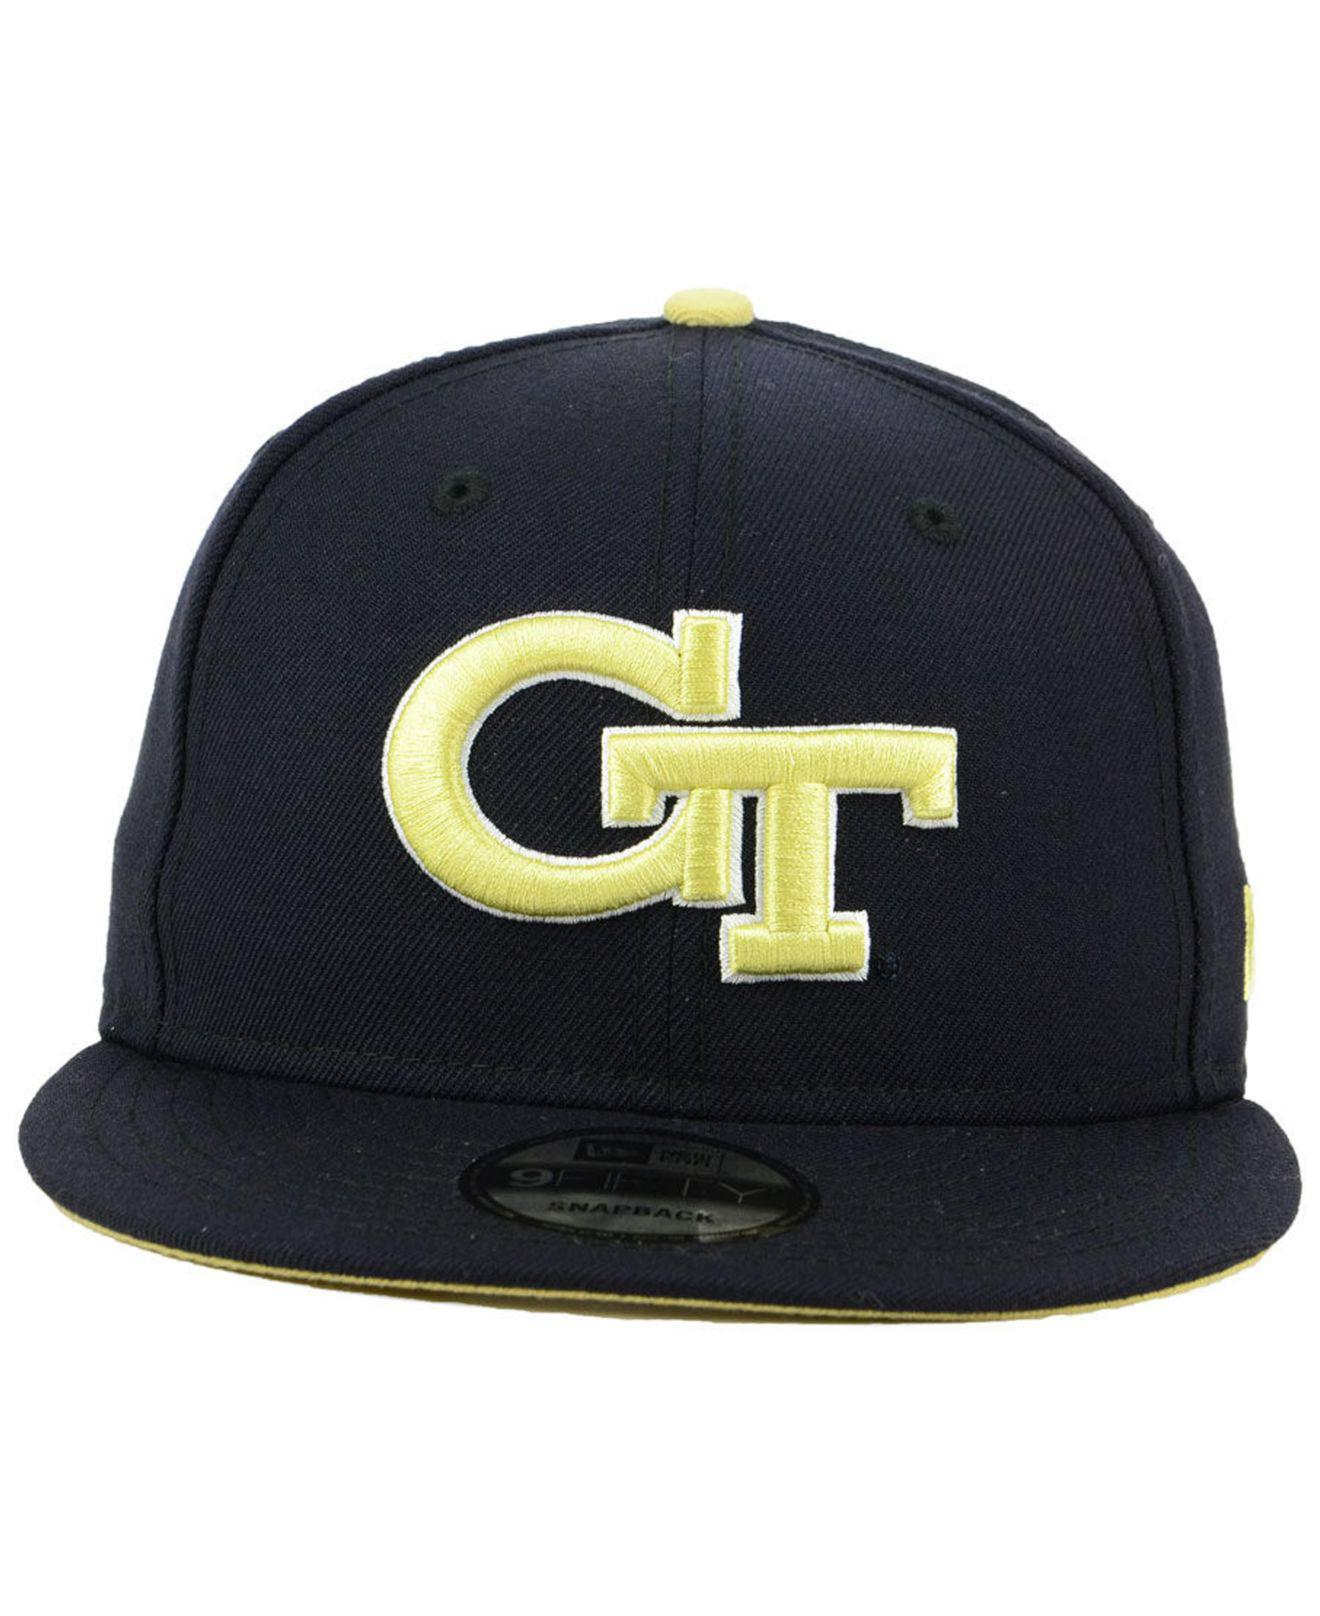 c2b7a2c5123 switzerland classic logo hat black white c684d ea7be  get lyst ktz georgia  tech core 9fifty snapback cap in black for men 2a1eb 7a3bc